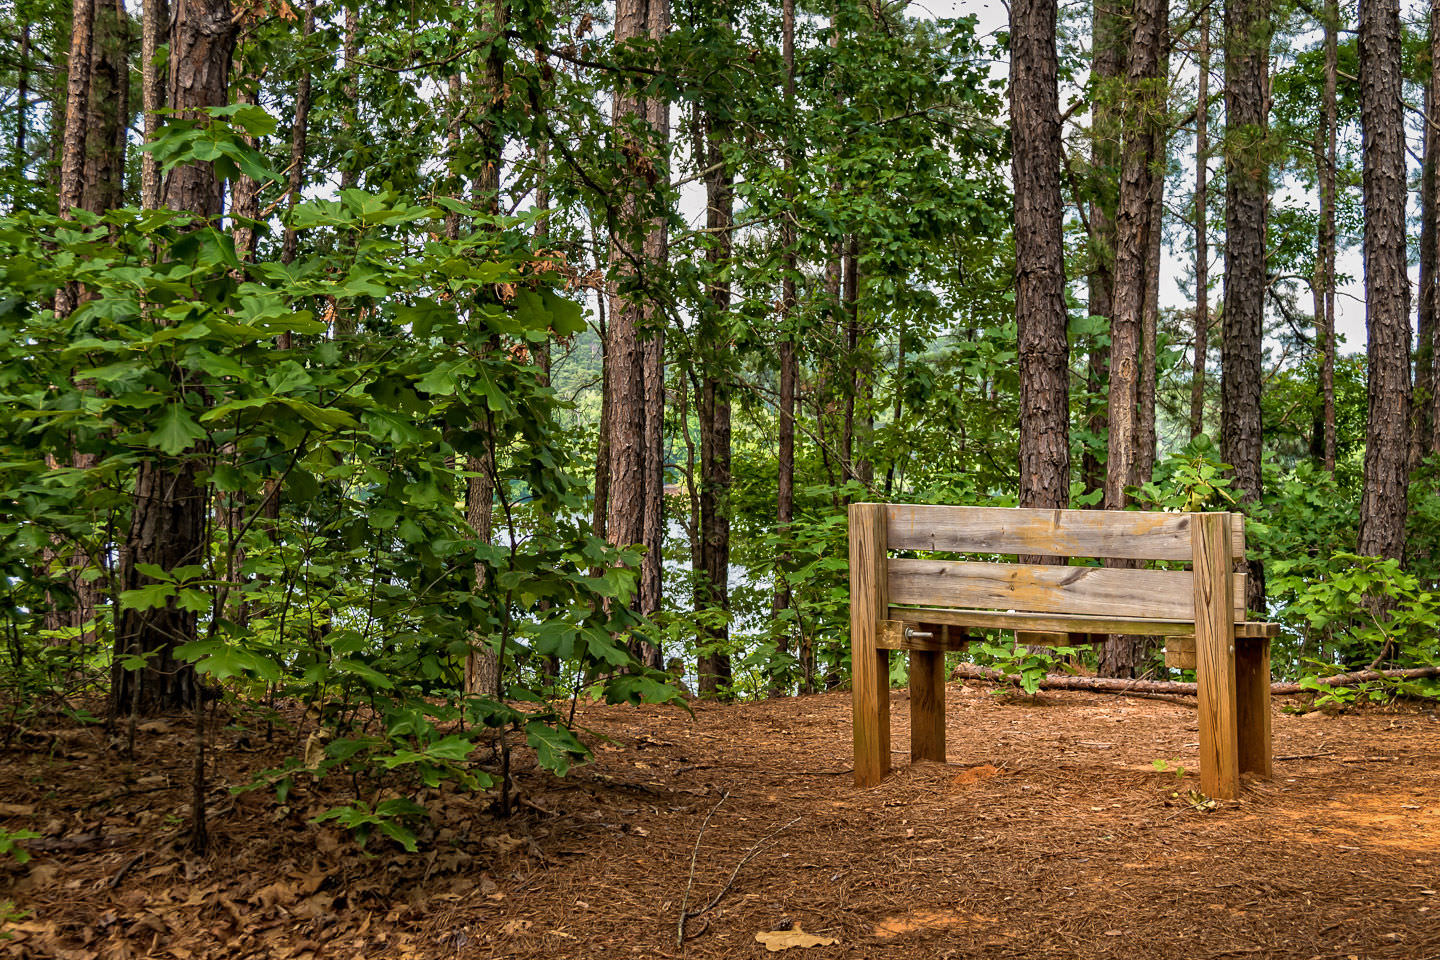 A bench on a path along the lake at Tyler State Park, Texas.